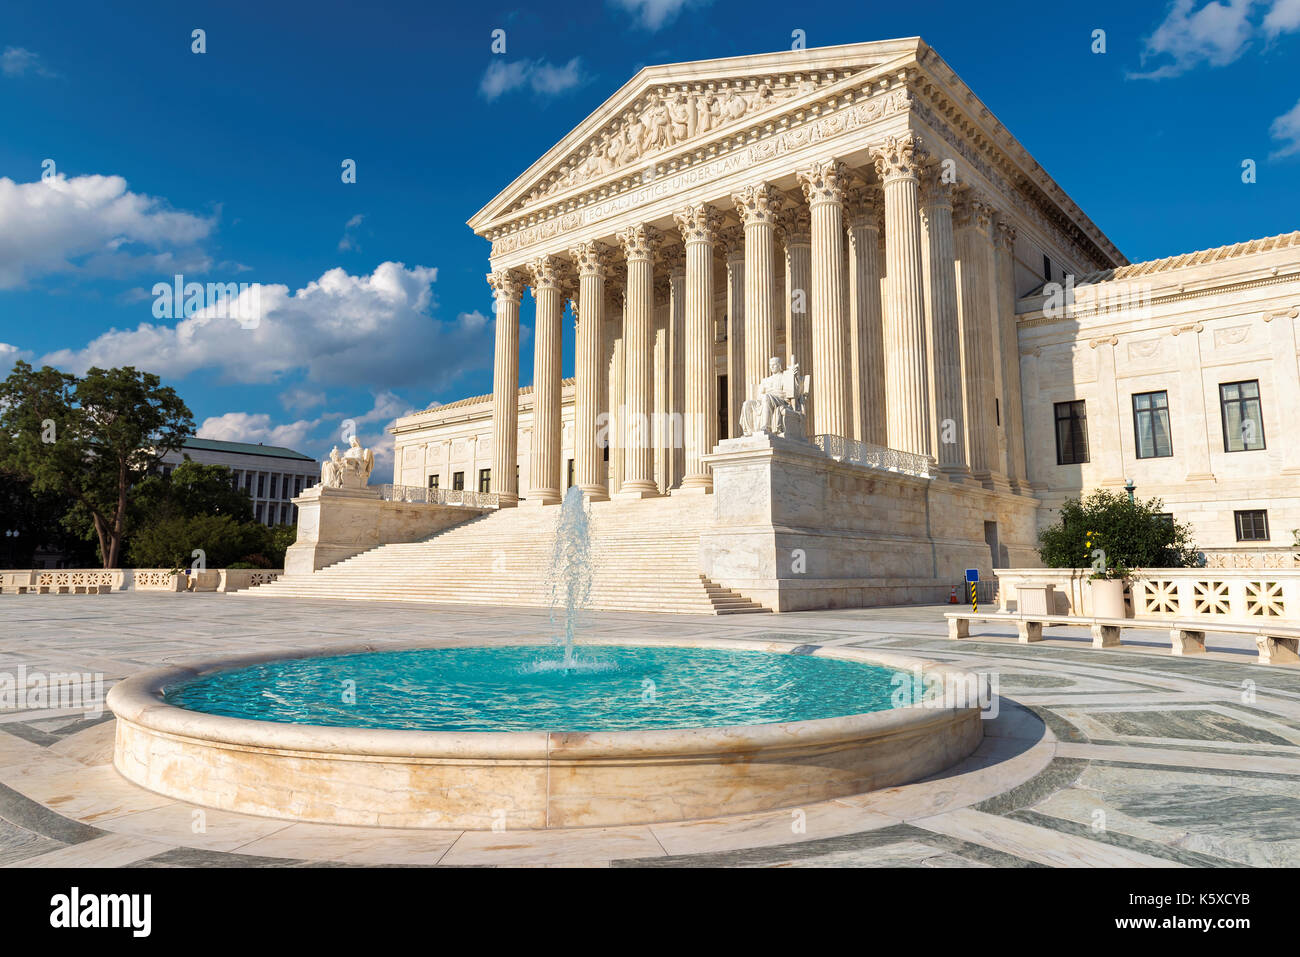 United States Supreme Court Building at sunset in Washington DC, USA. - Stock Image